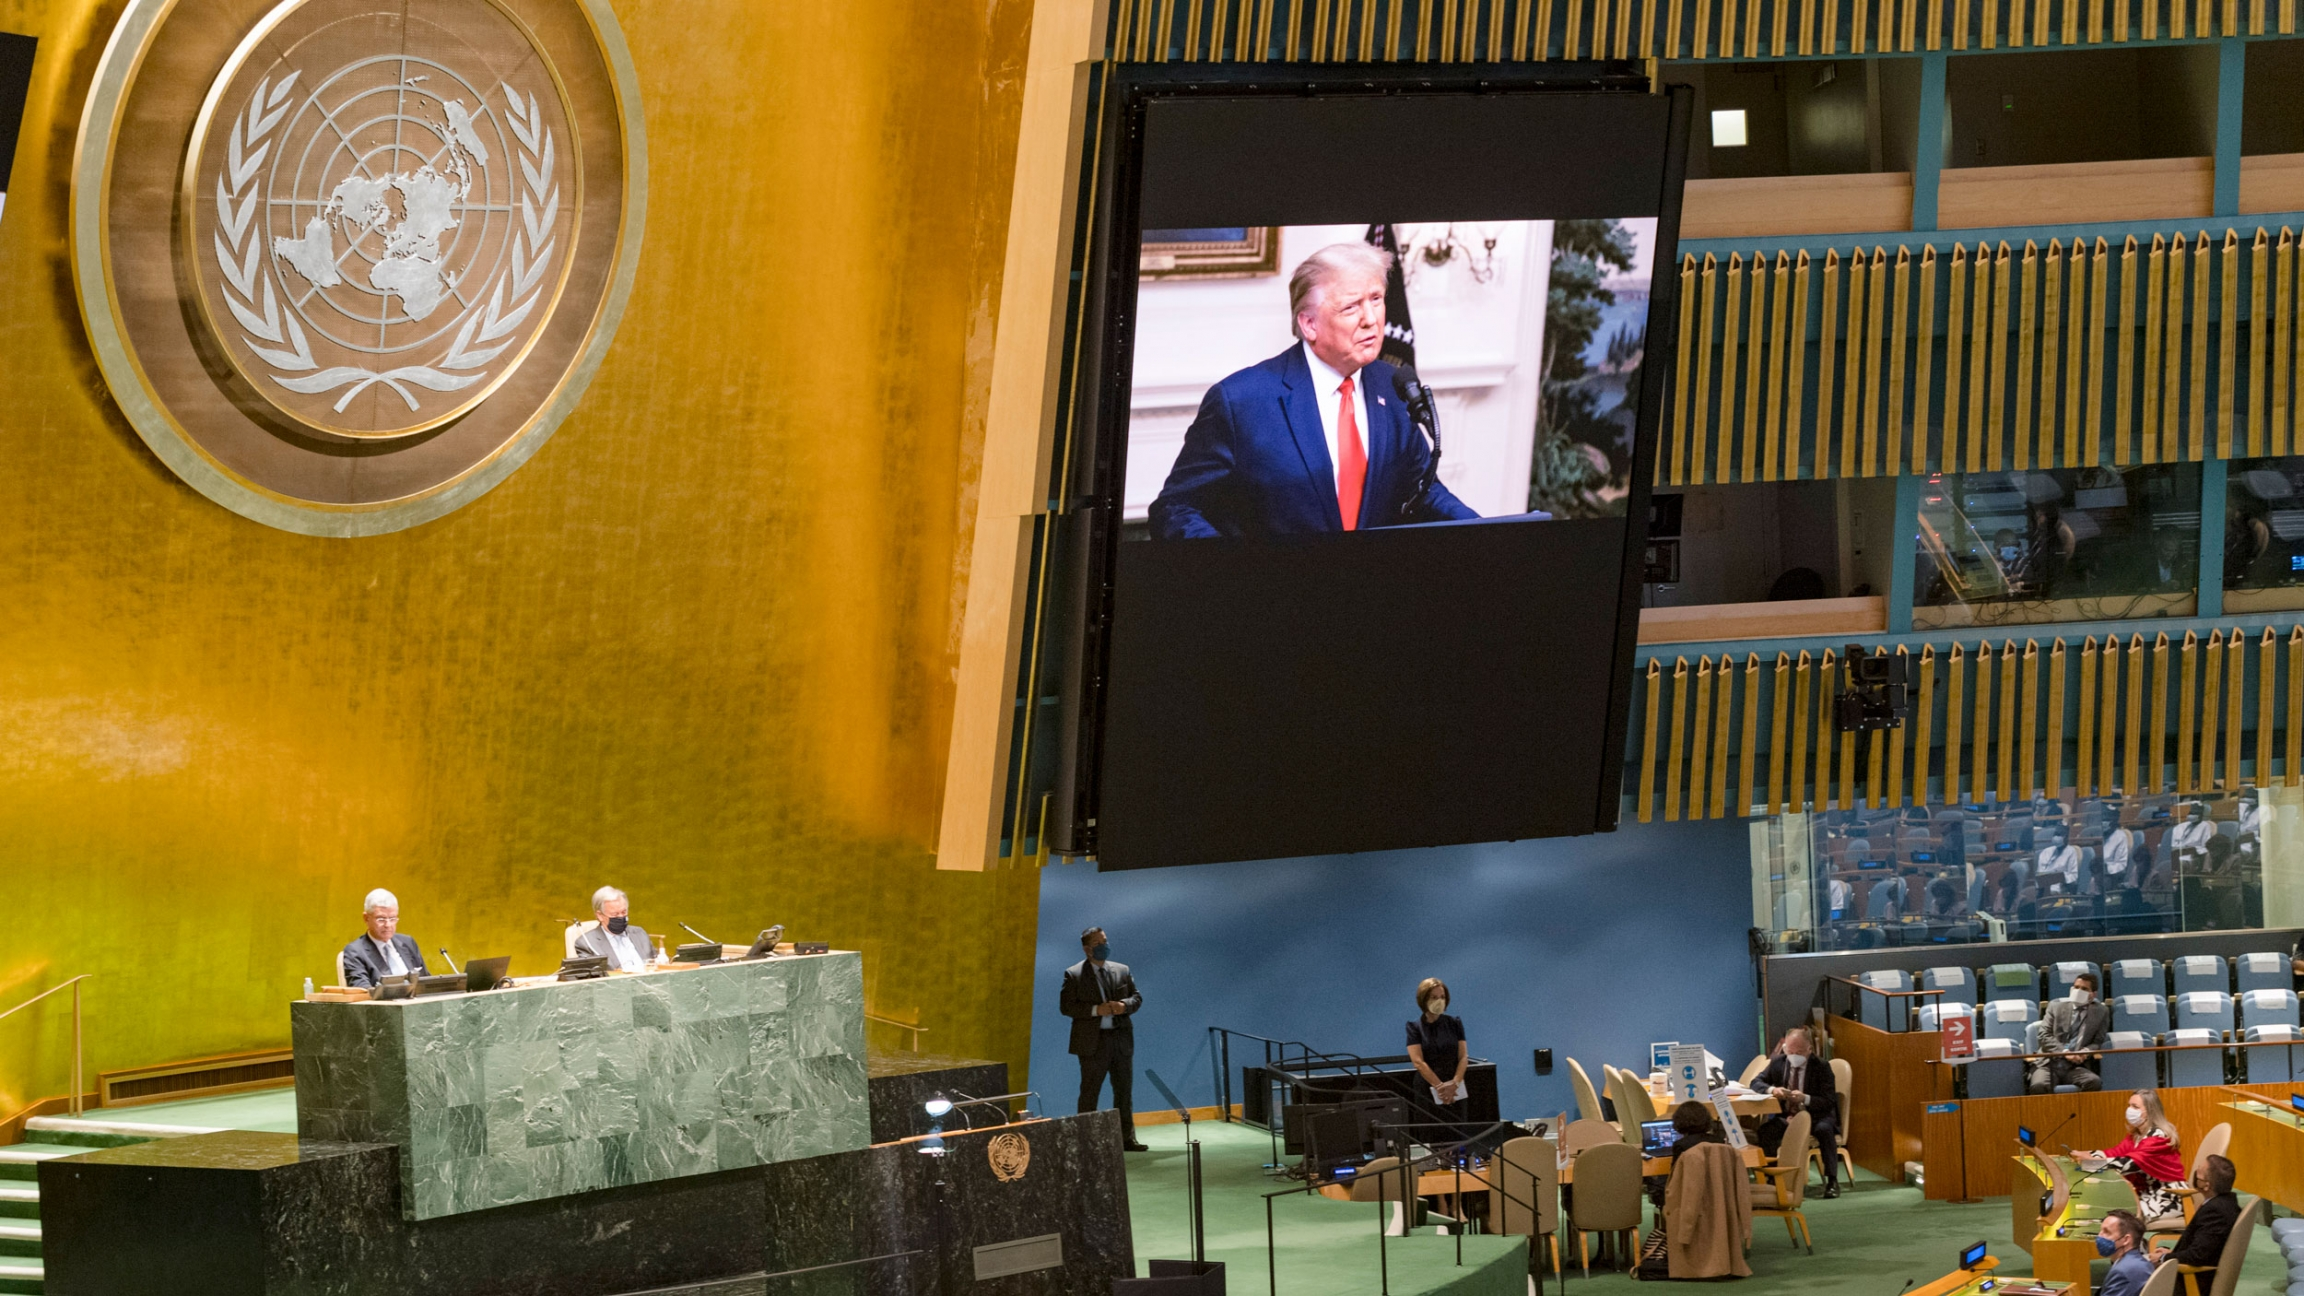 US President Donald Trump, shown on a large video screen against a gold leaf wall and the United Nations symbol.